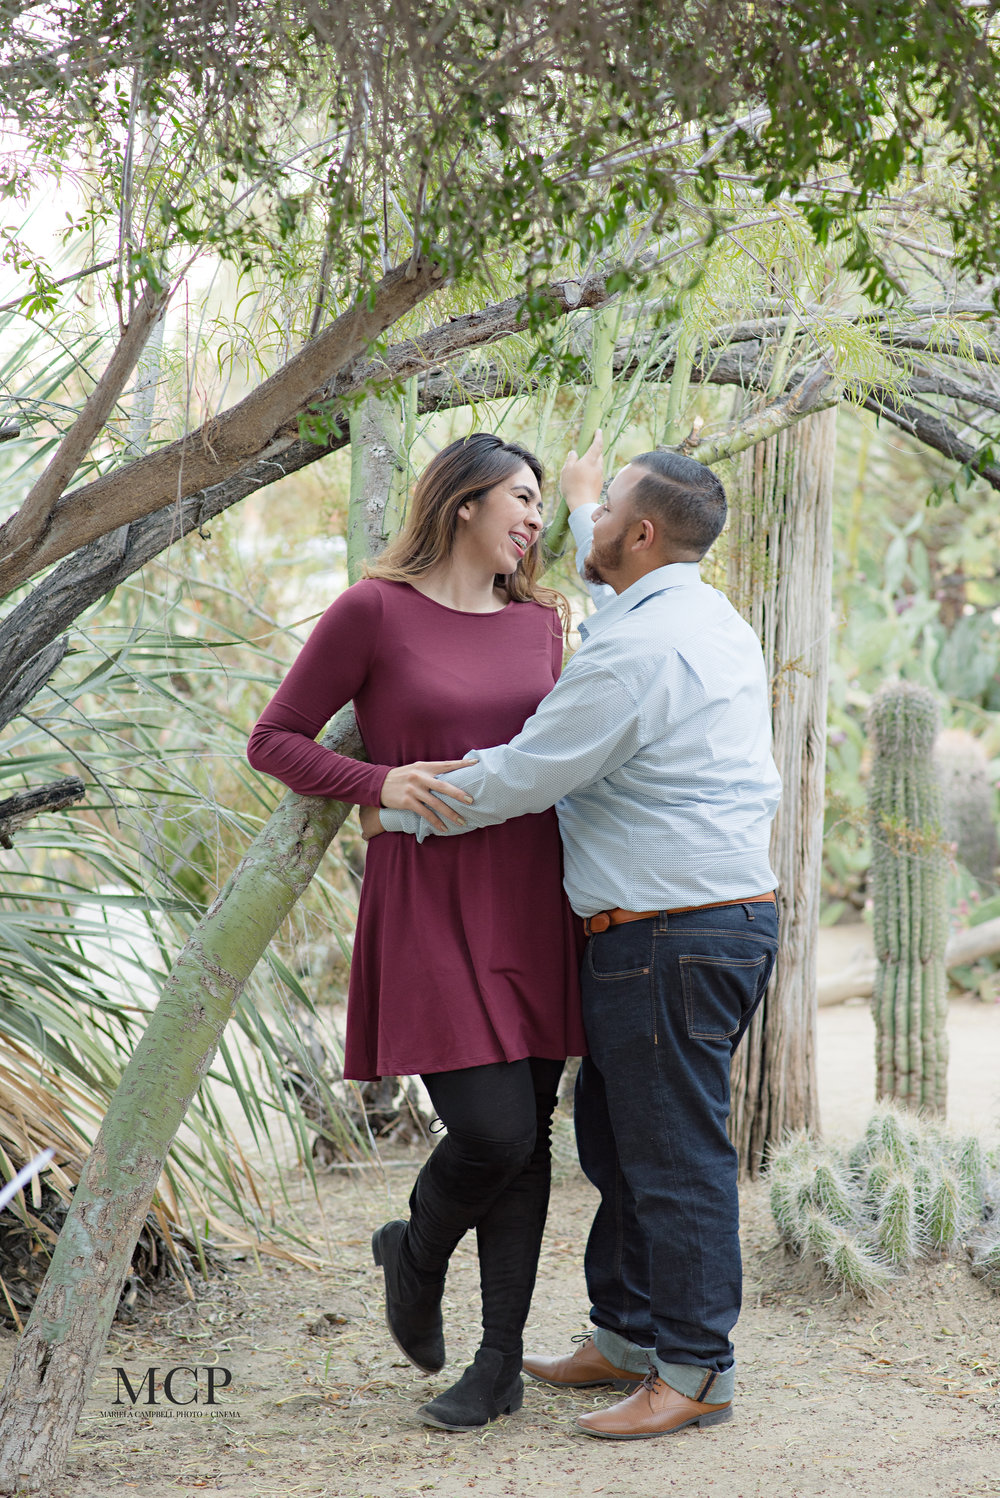 MCP- Engagement Palm Springs-6.jpg